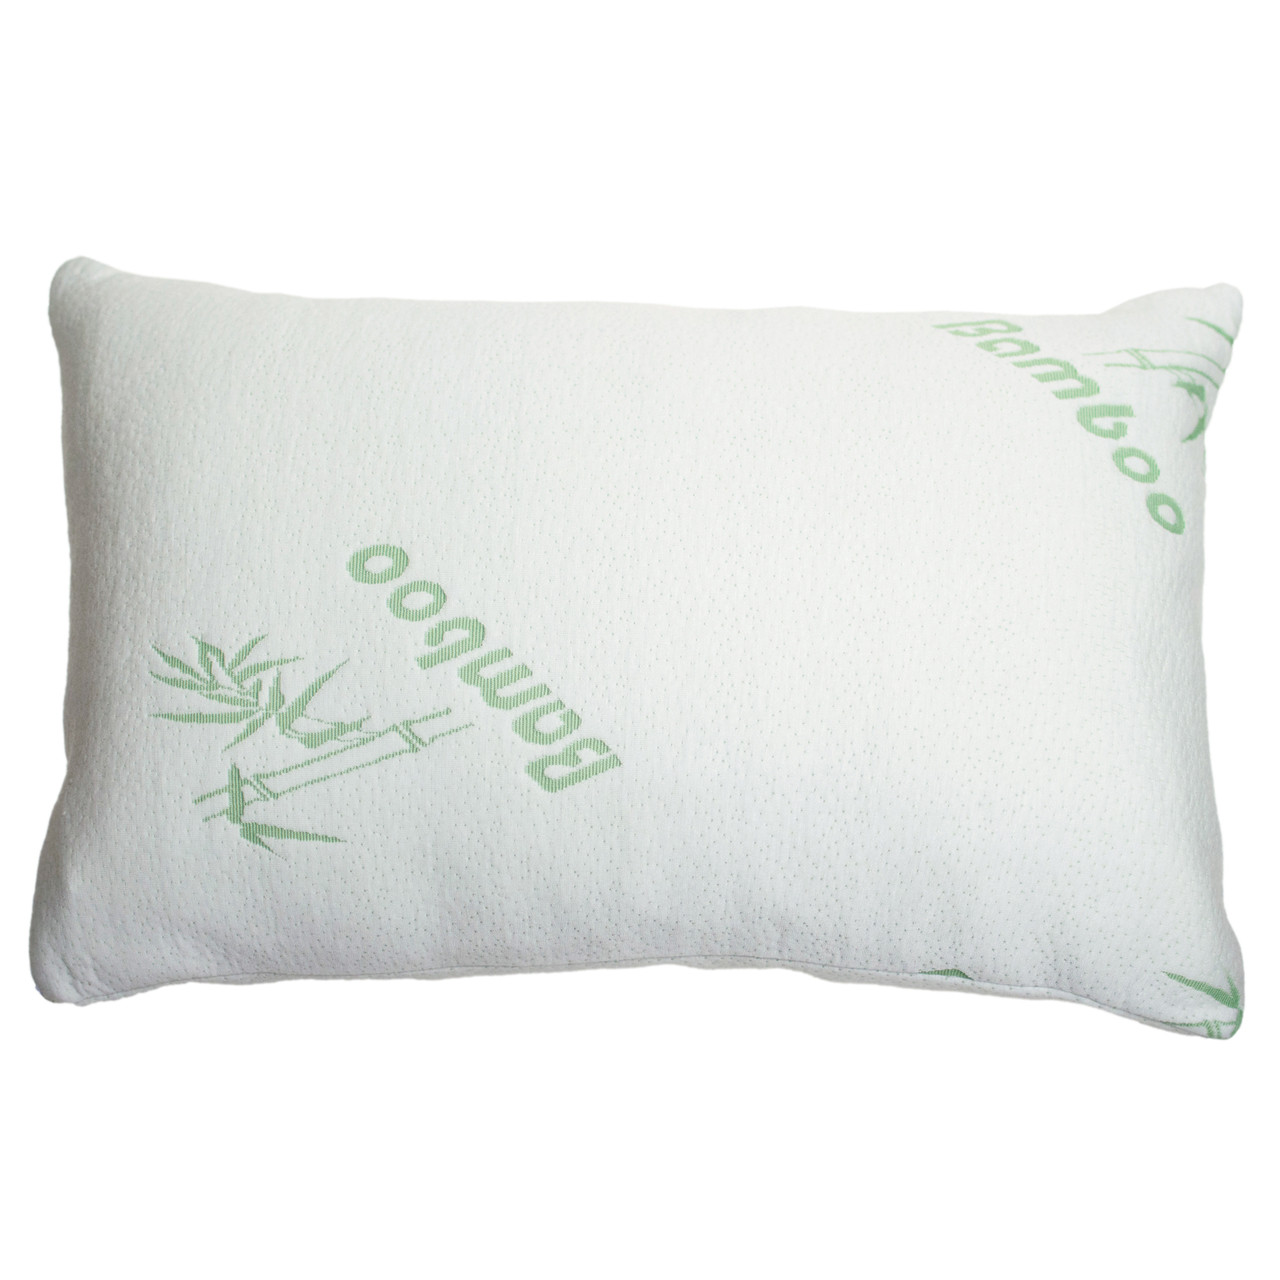 right is xtreme it pillow comforts shredded foam memory for review